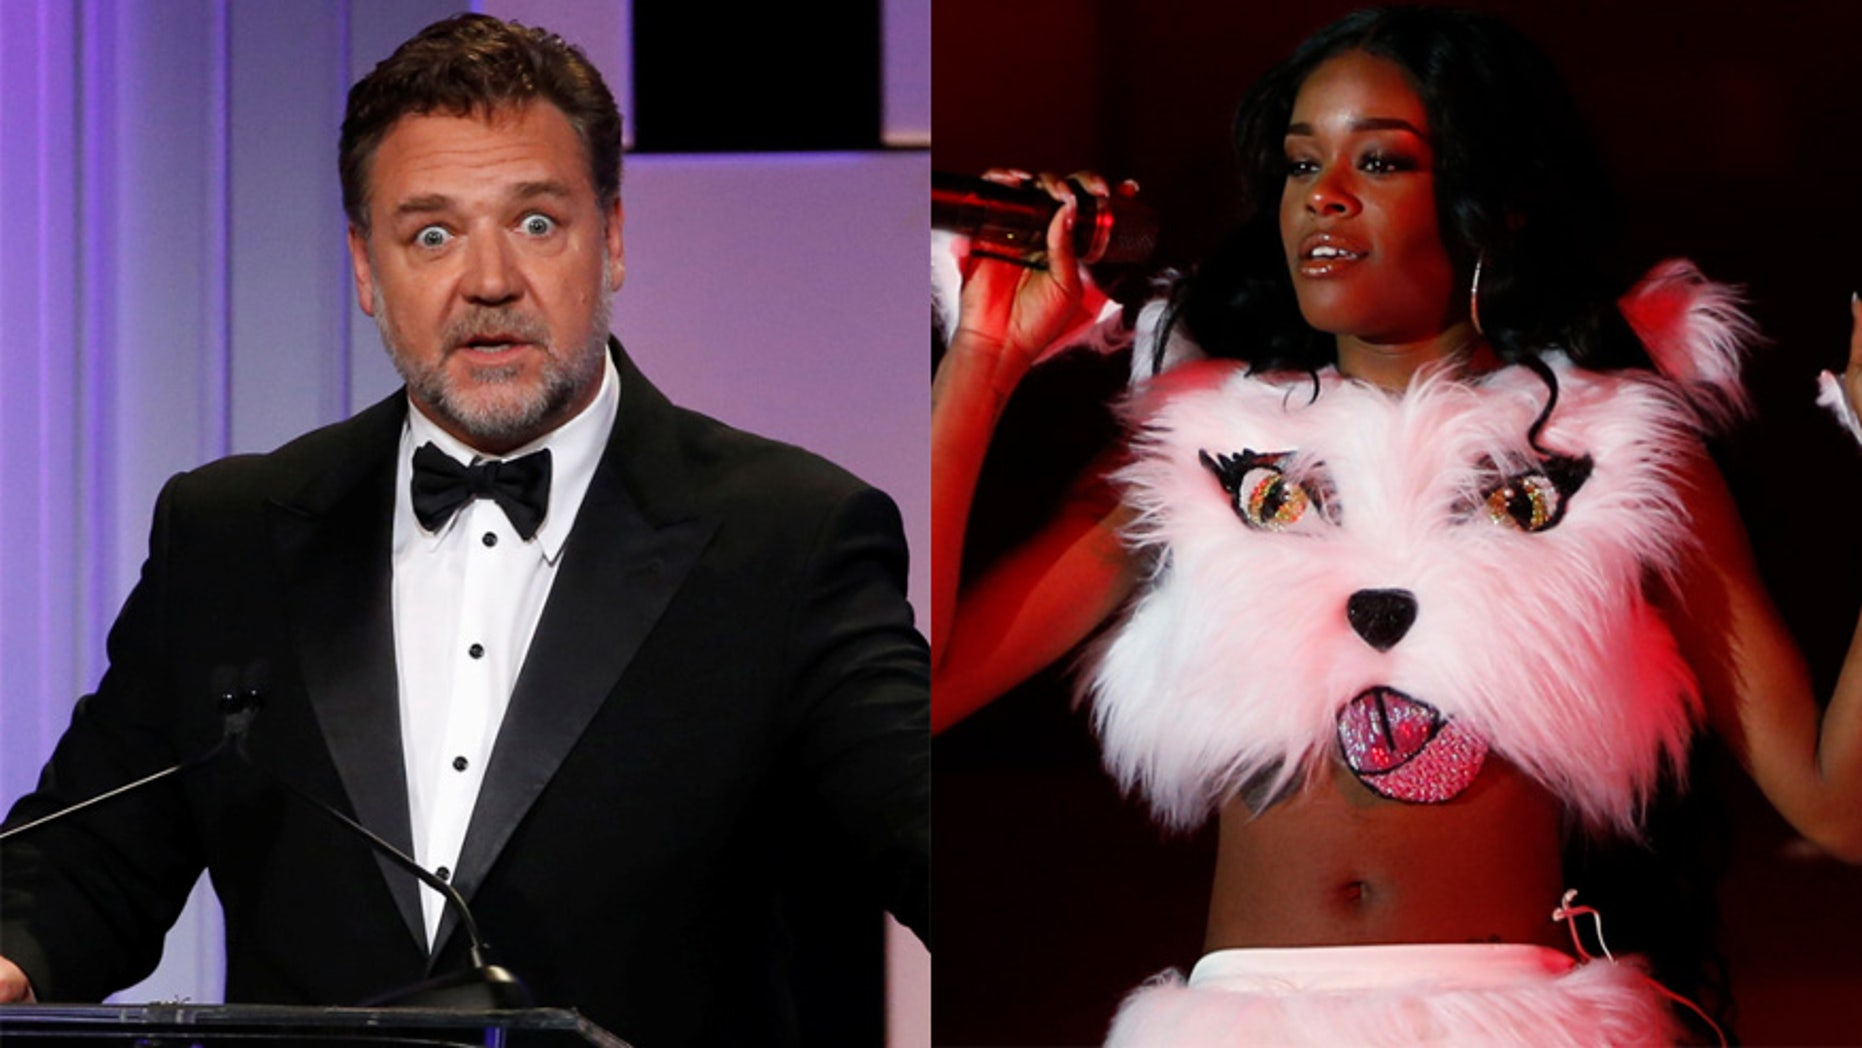 Russell Crowe and Azealia Banks